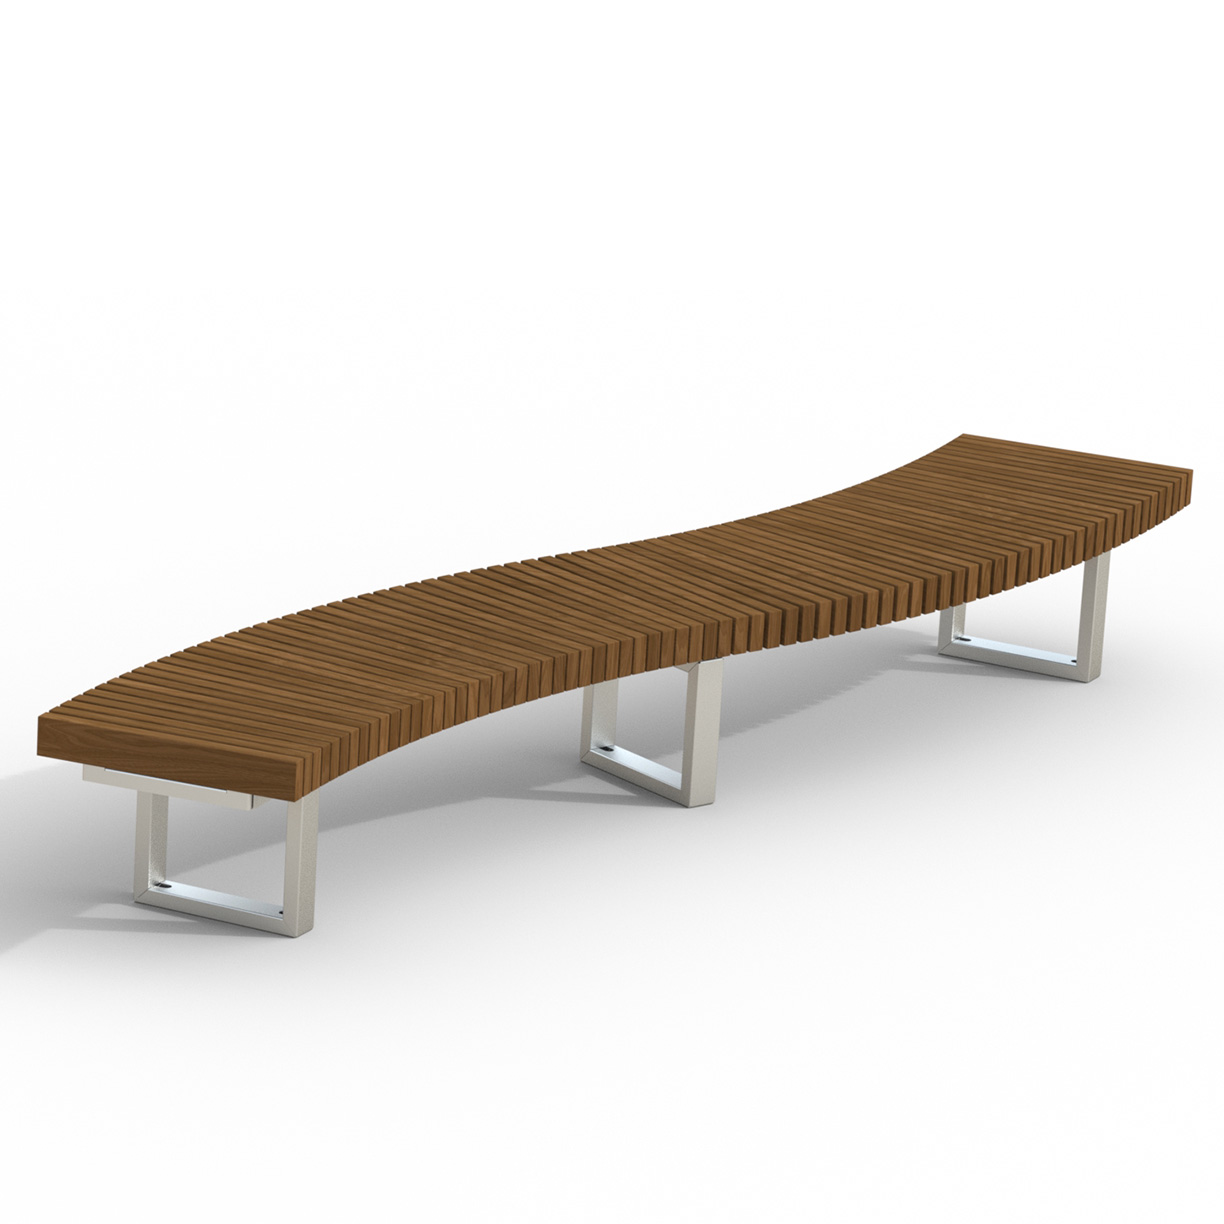 INF24S12x2T  Infinity Collection Alternating 30 Degree Curves Thermory Slat Serpentine Bench